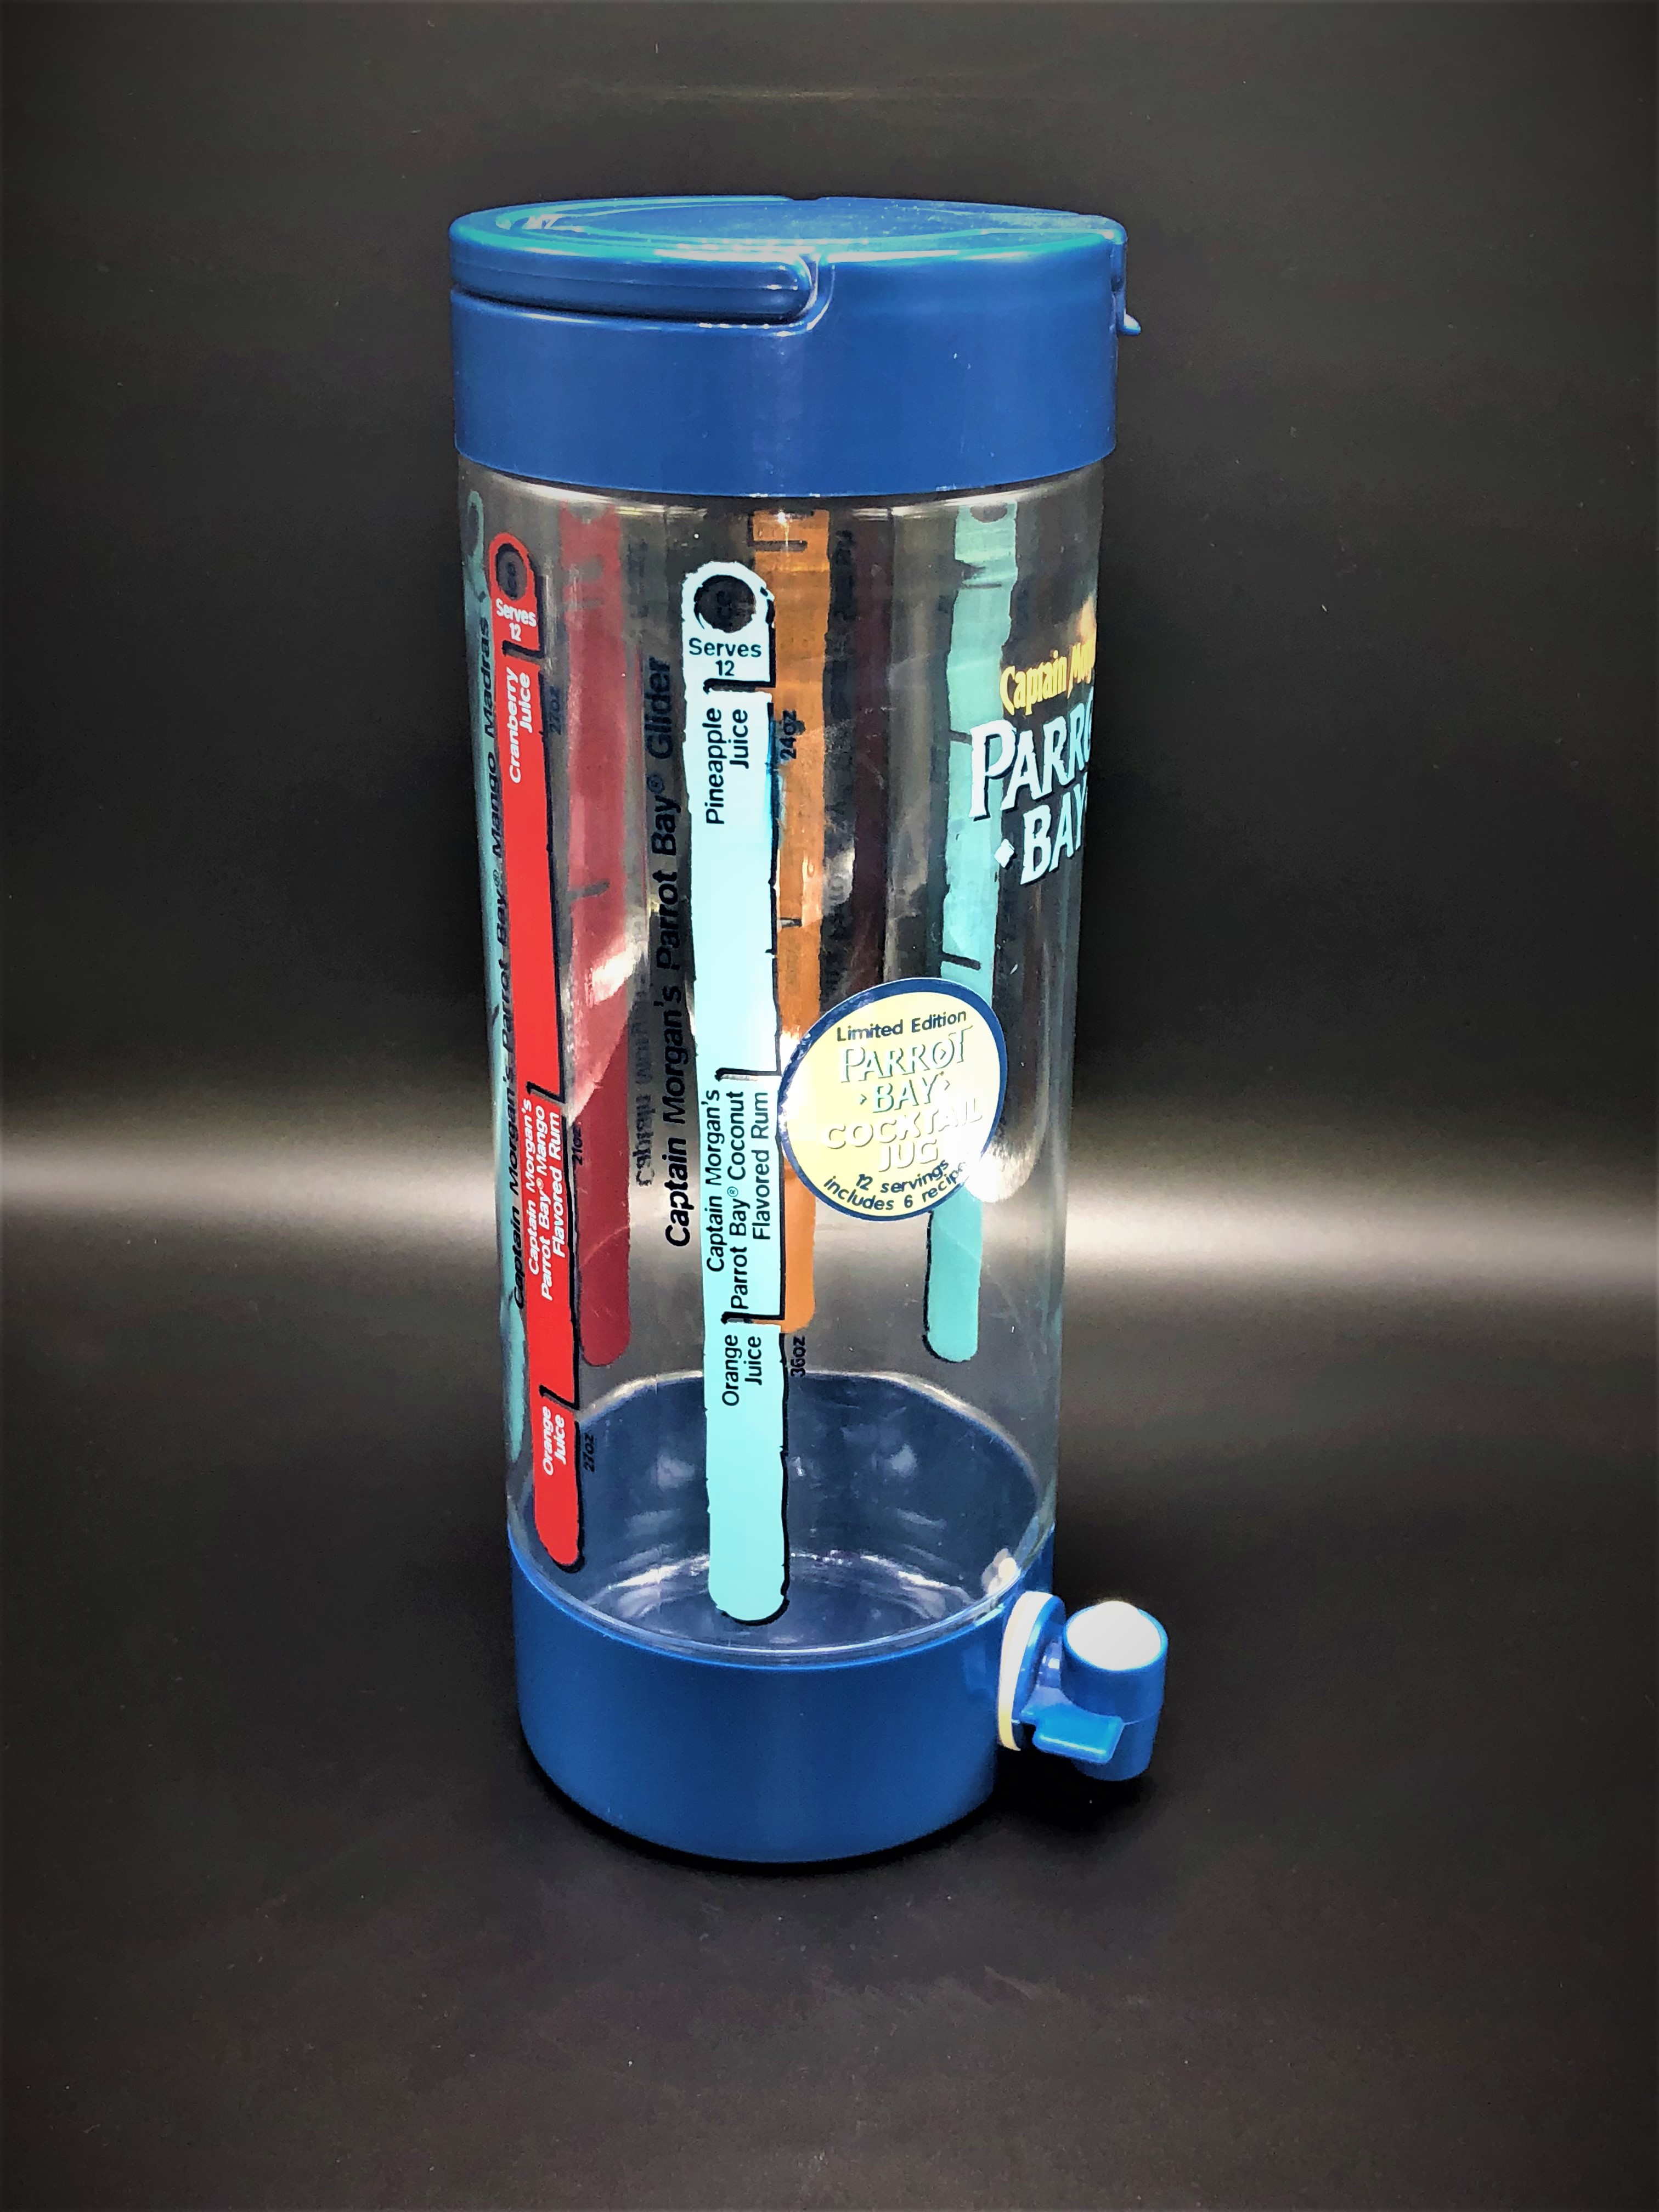 Drink Dispenser (Cpt Morgan-Parrot Bay)-